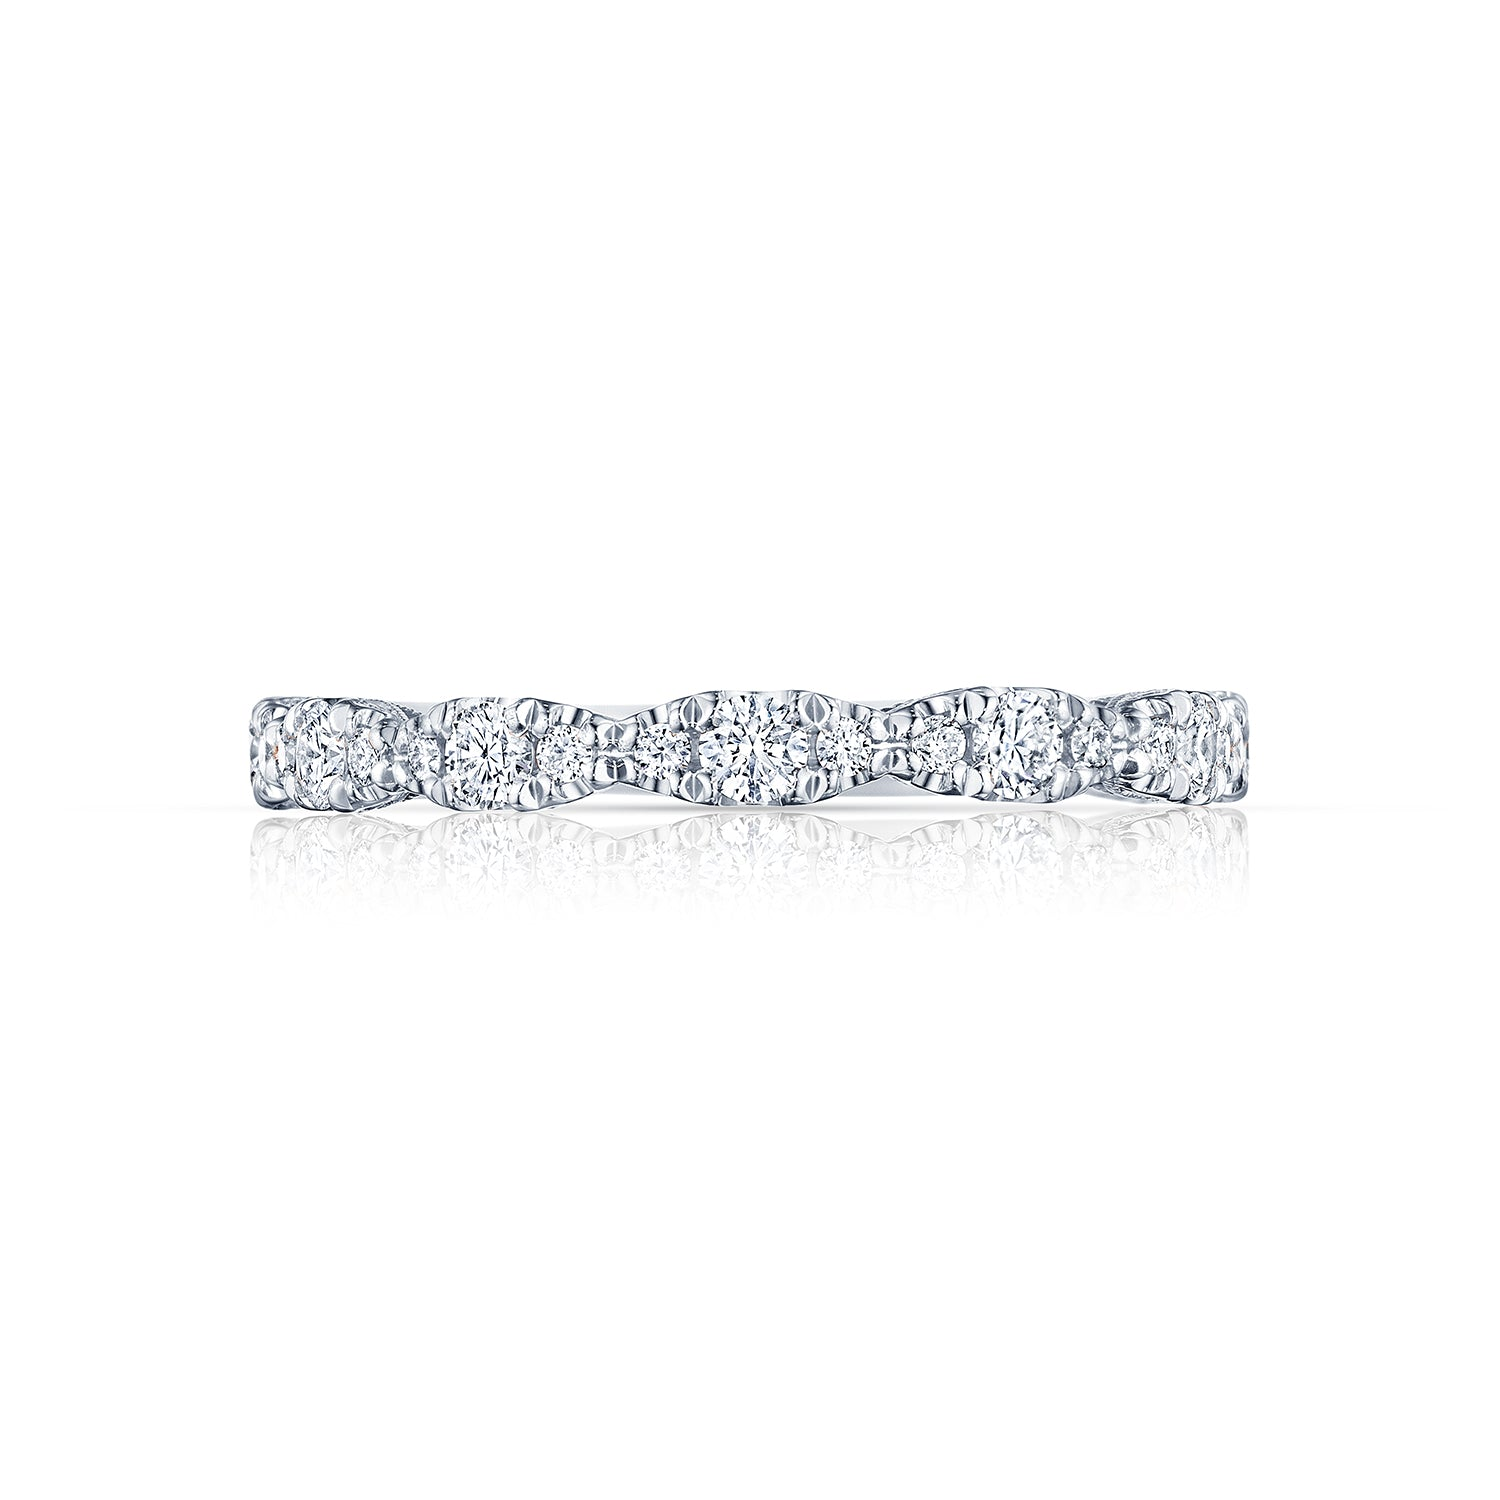 Tacori 'Petite Crescent' Wedding Band